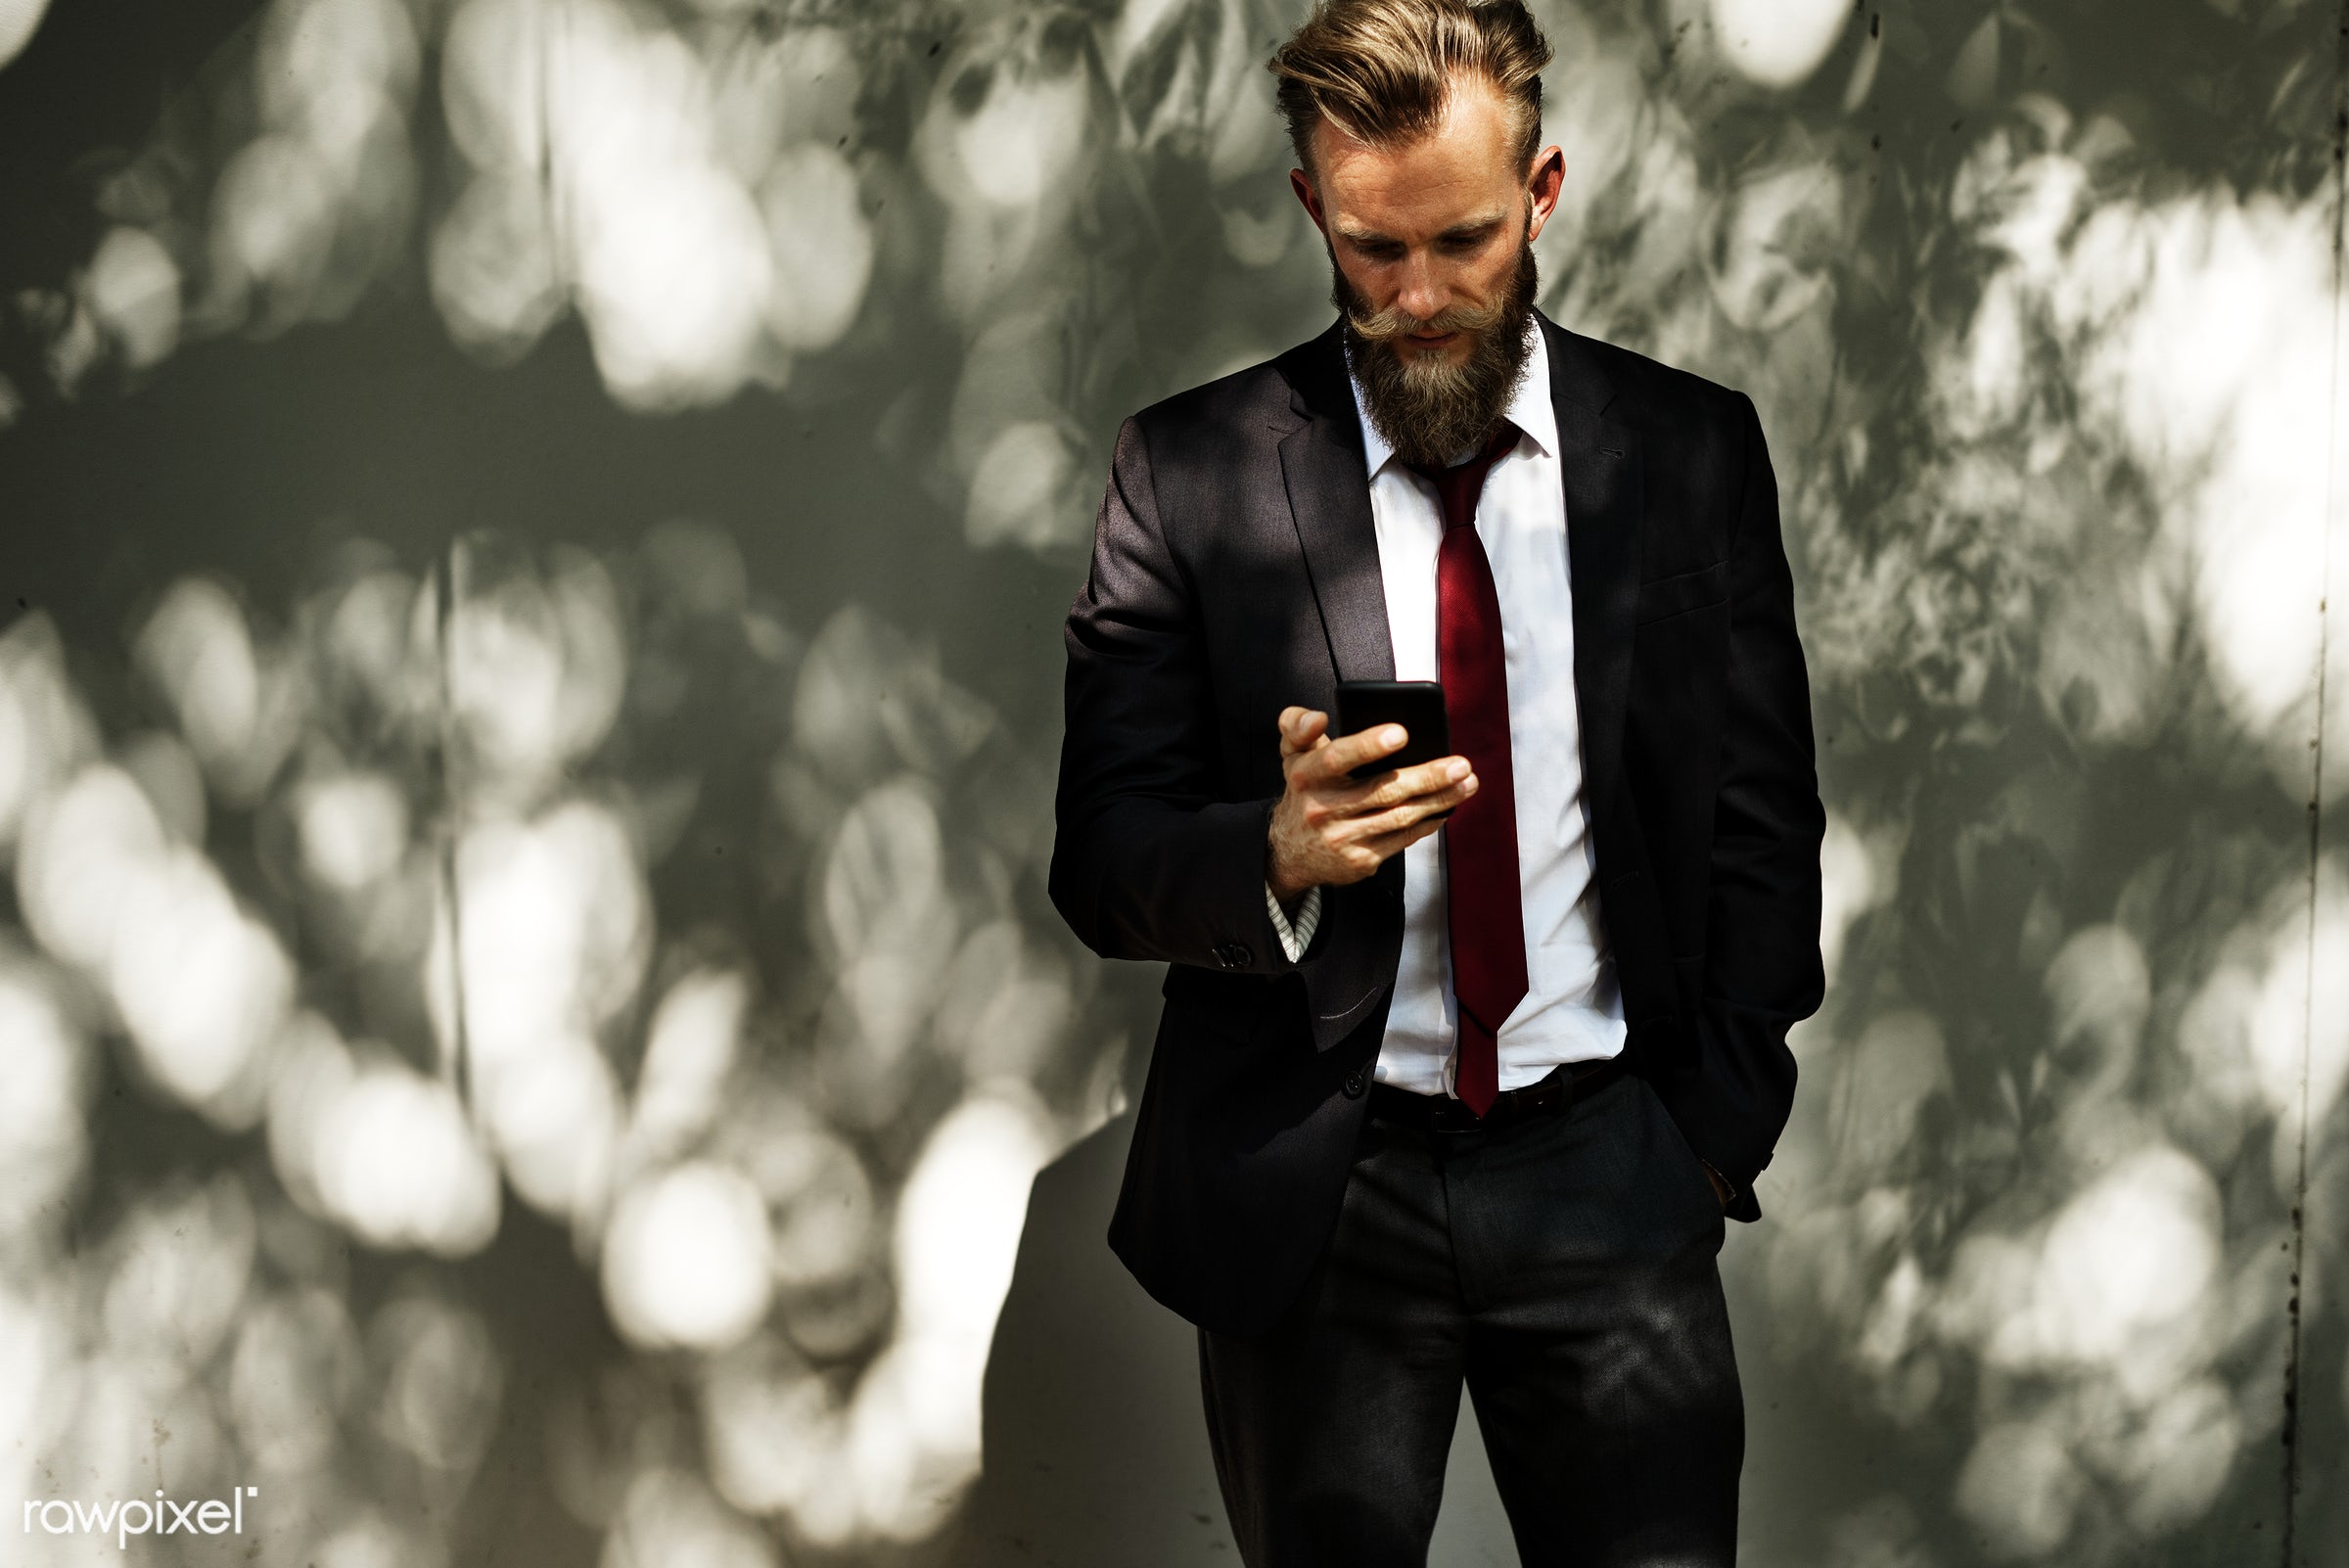 man, suit, beard, business, cc0, connection, corporate, creative common 0, creative commons 0, interaction, internet, mobile...